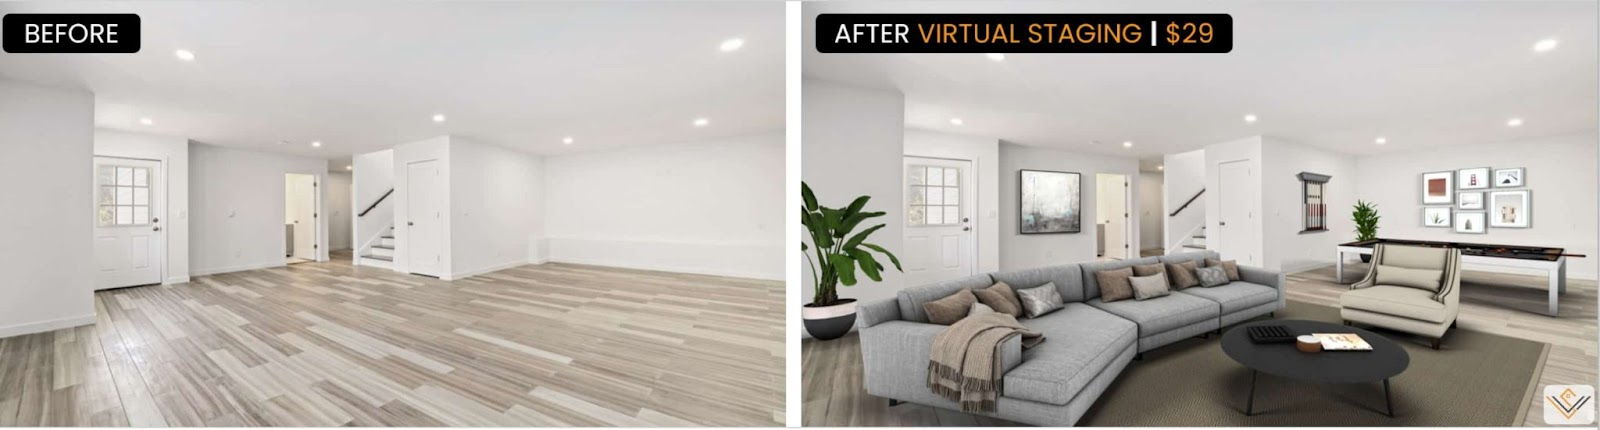 Virtual Home Staging Software VRX Staging